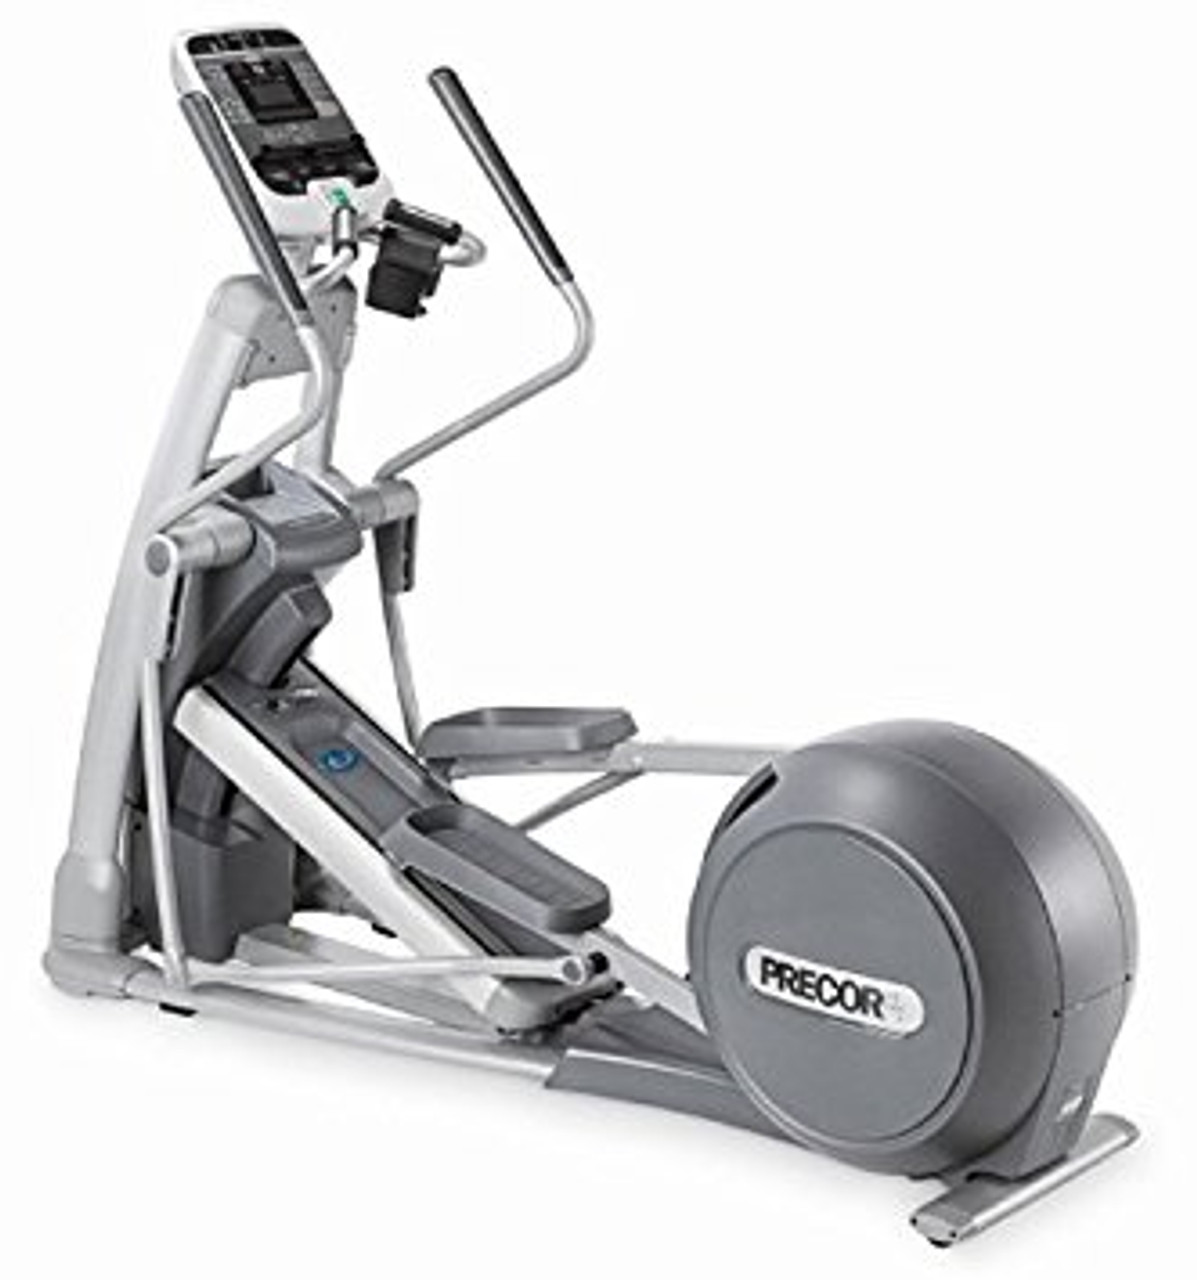 Precor 576i experience series elliptical